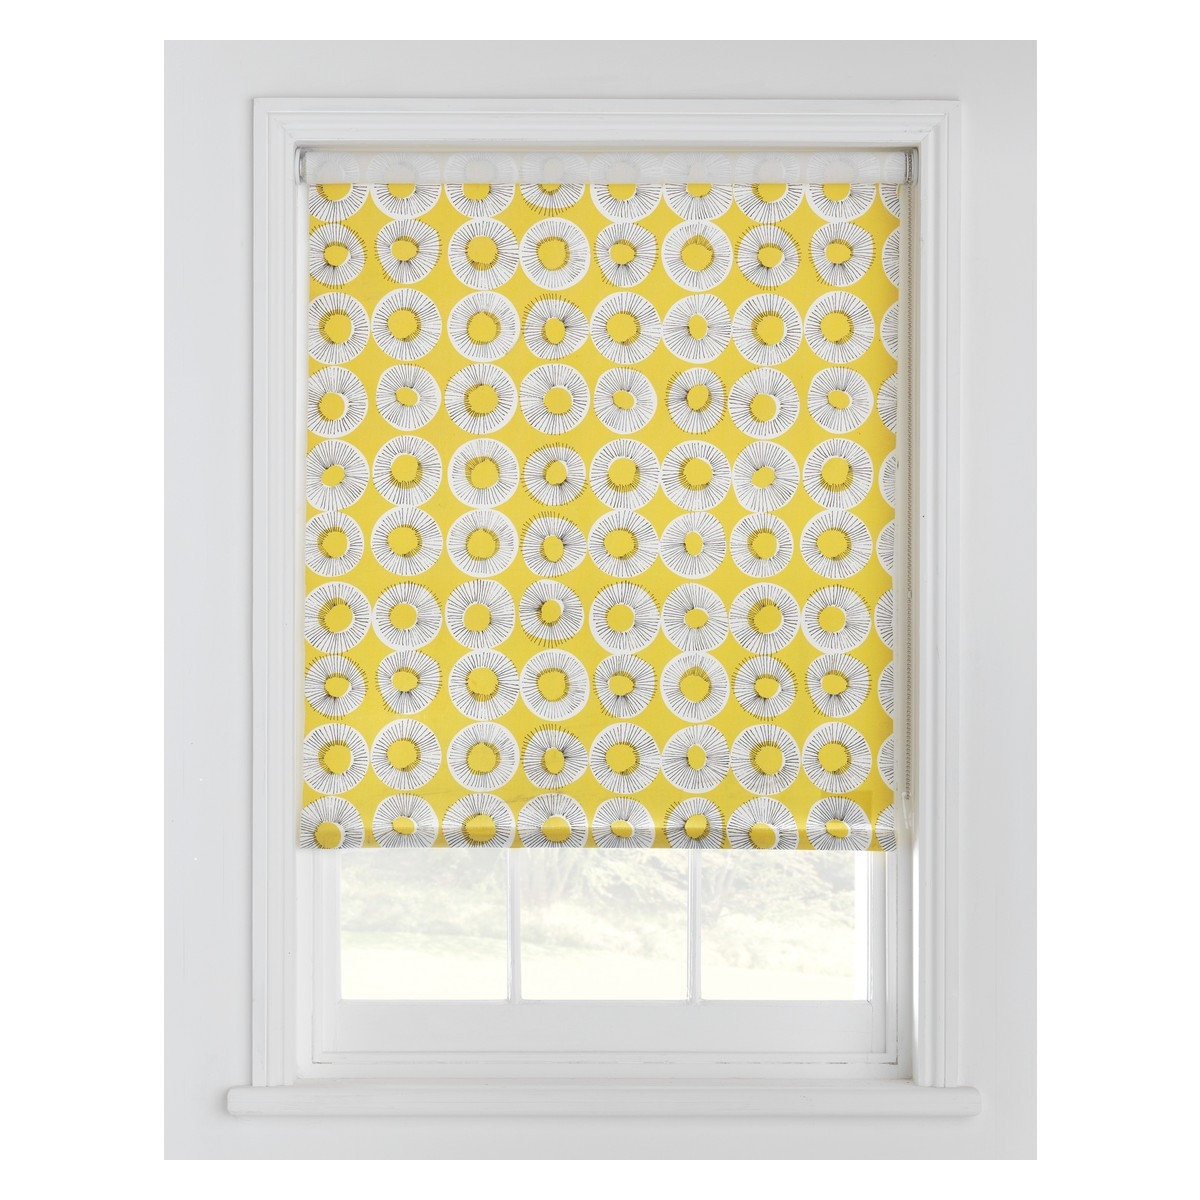 Featured Image of Patterned Roller Blind